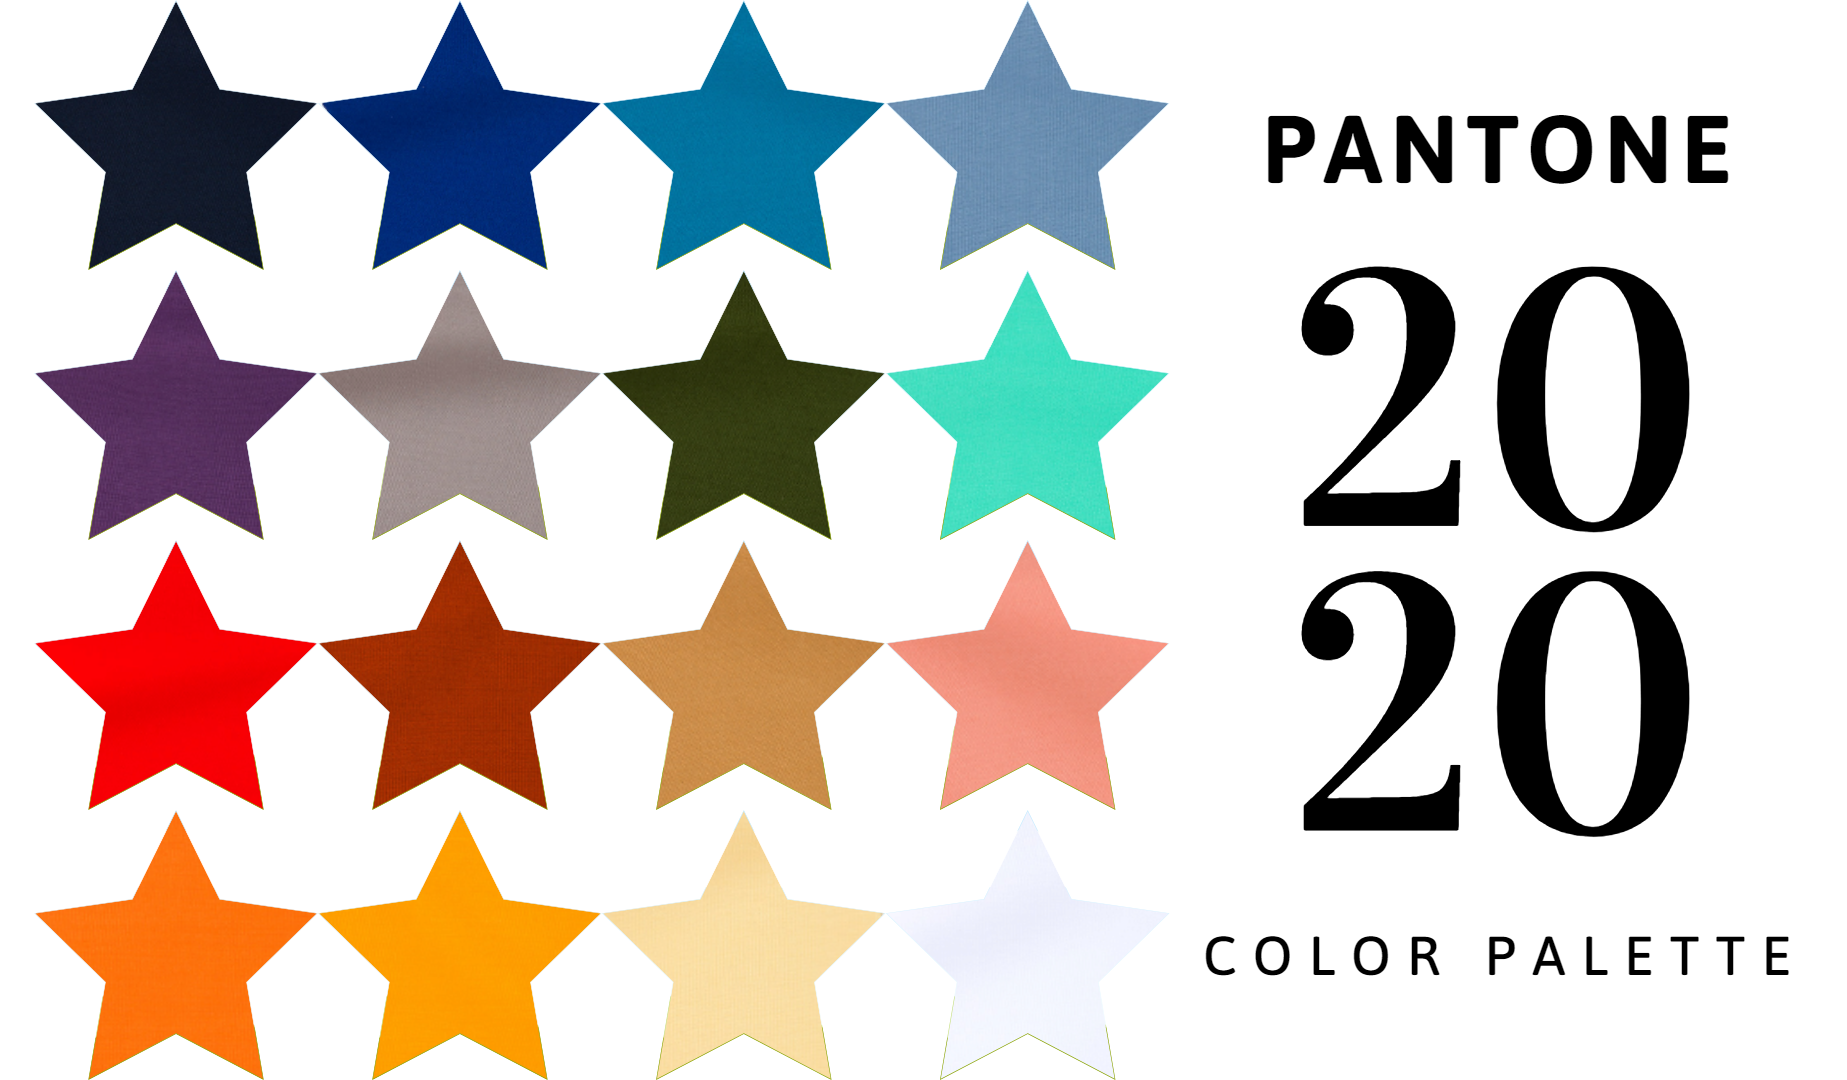 Pantone Color Palette 2020